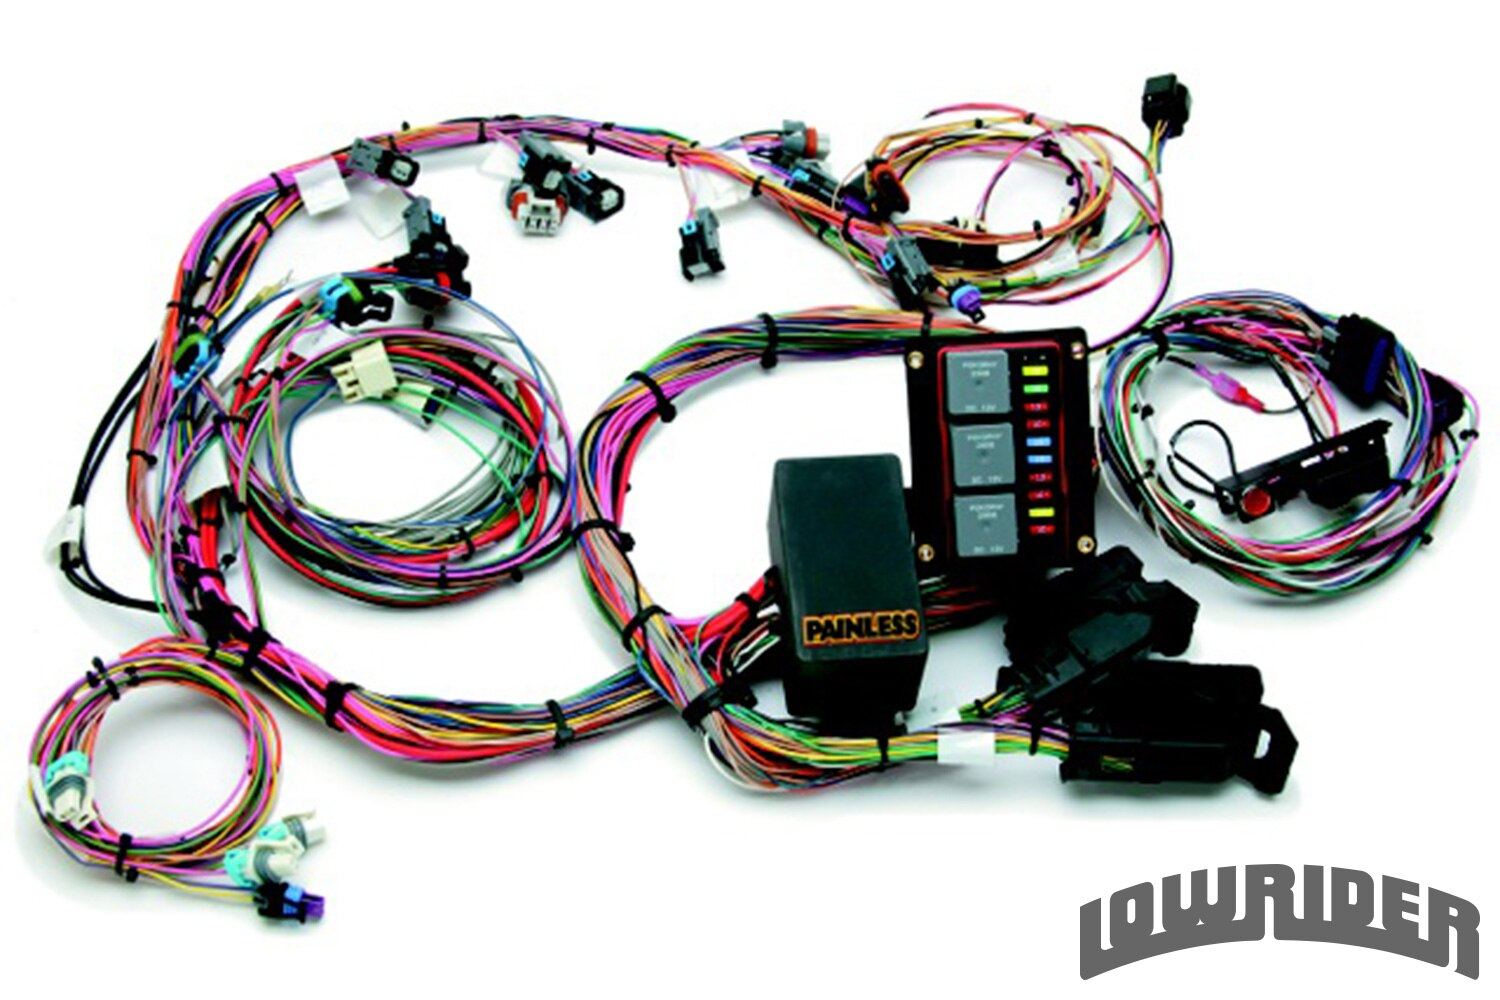 lowrider new products march 2014 painless performance LS harness lowrider new products march 2014 lowrider magazine painless ls wiring harness at cita.asia